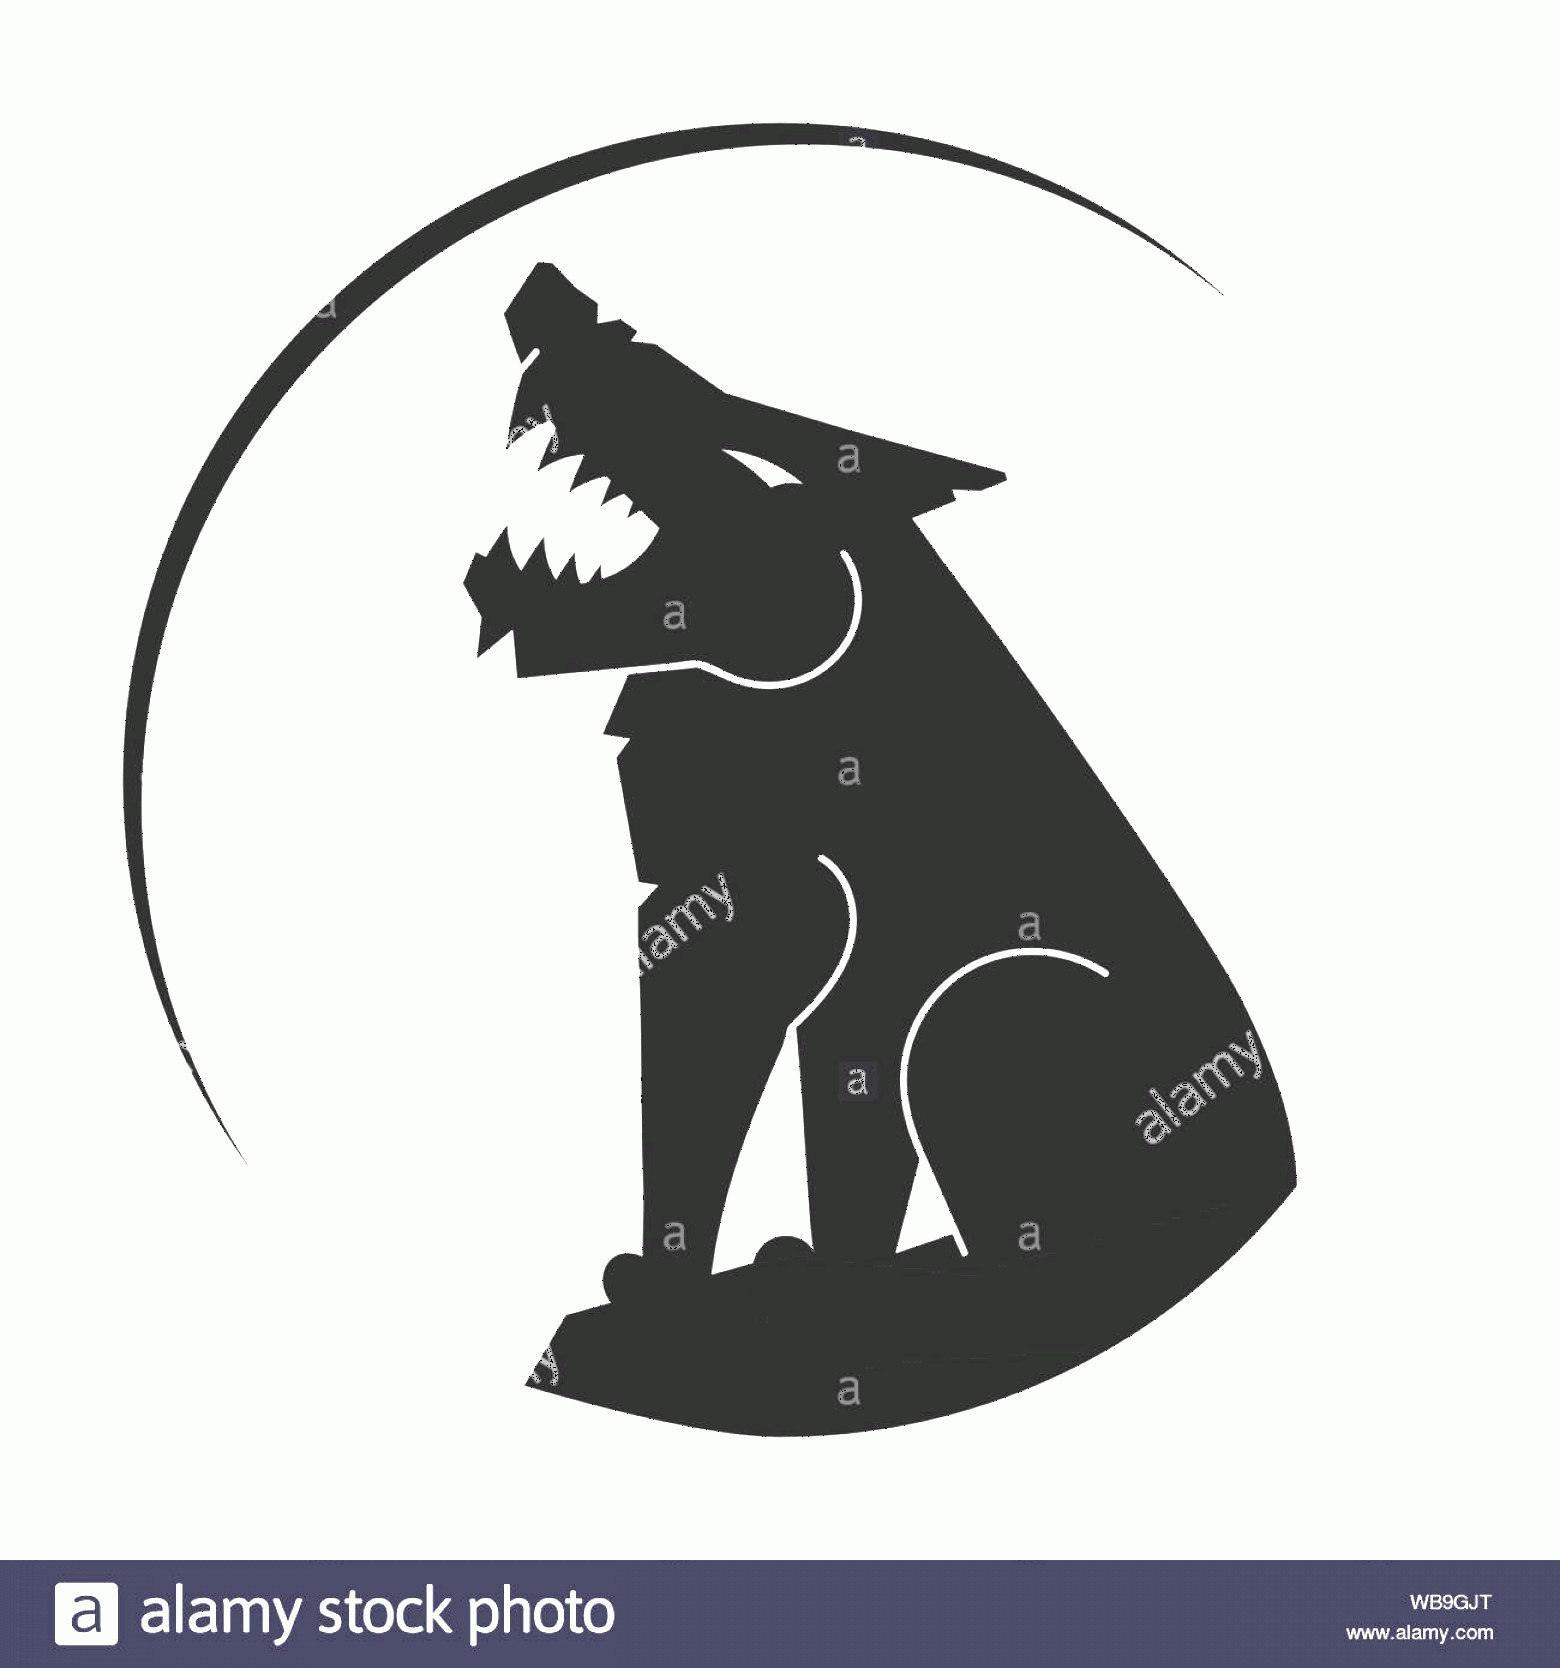 Wolf Vector Logo: Silhouette Of The Wolf Vector Logo Design Template Vector Illustration For T Shirts Flyers Textiles Image